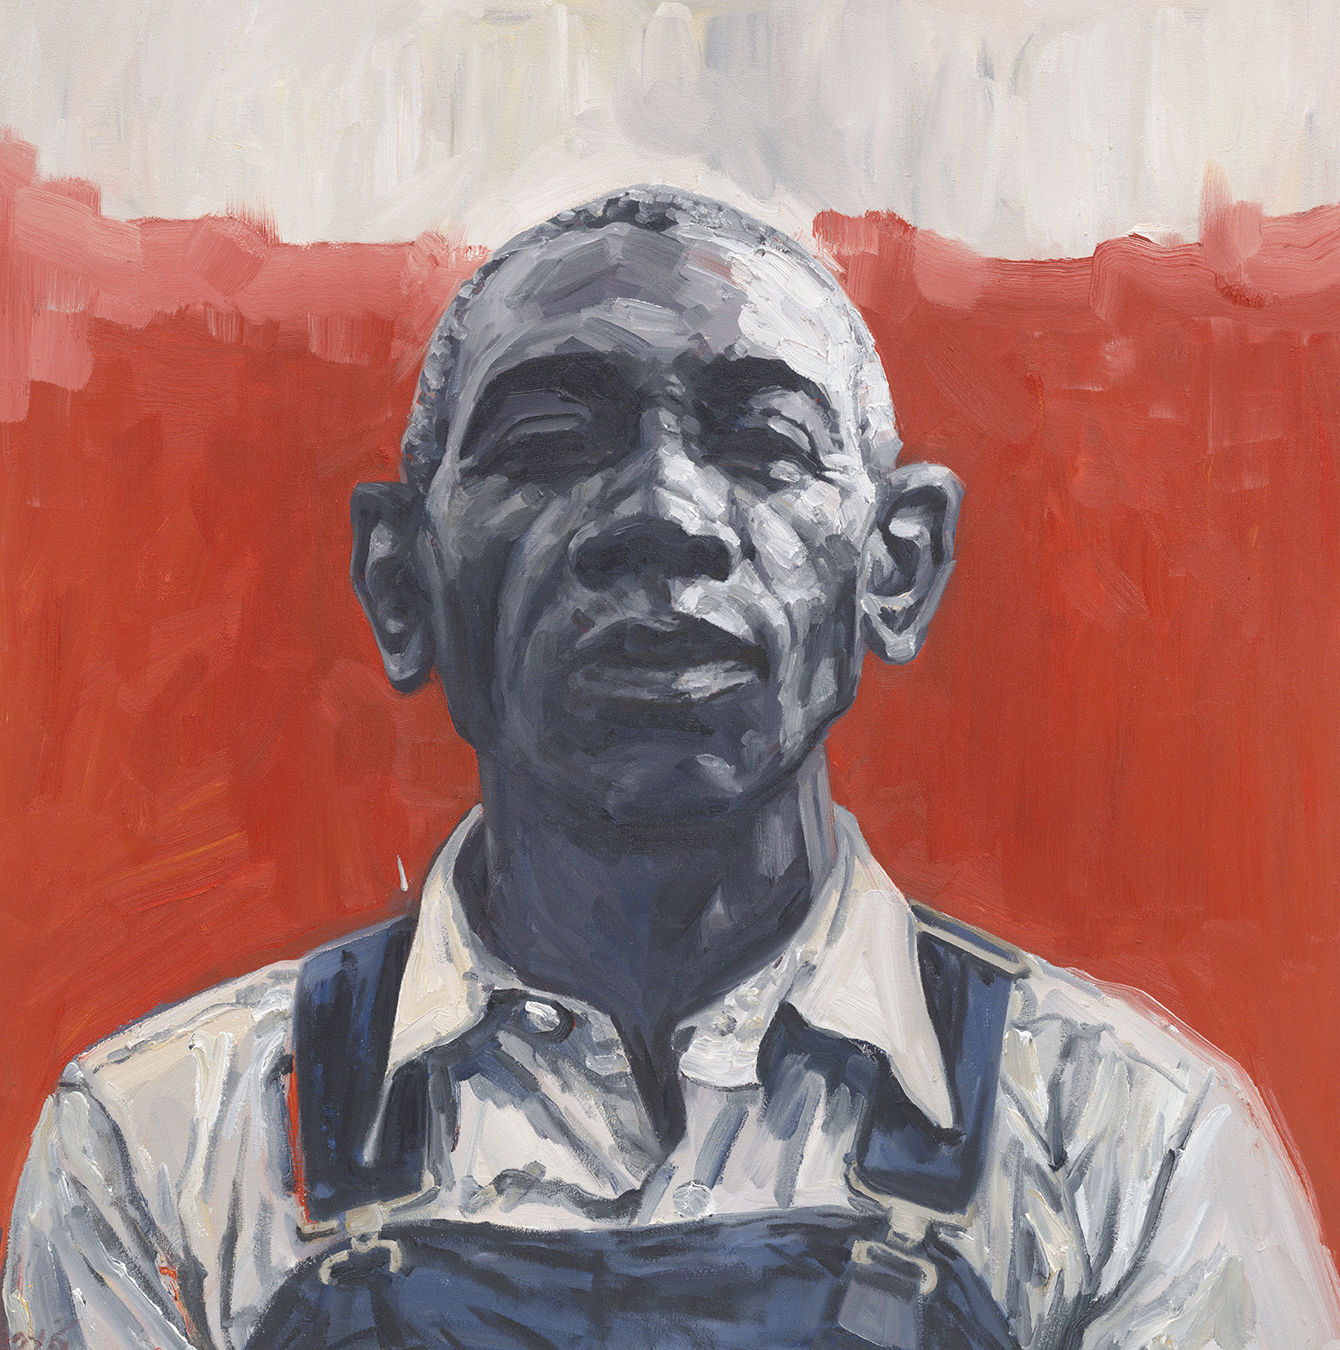 Old Black Joe, 2016, Oil on canvas  36 x 36 inches